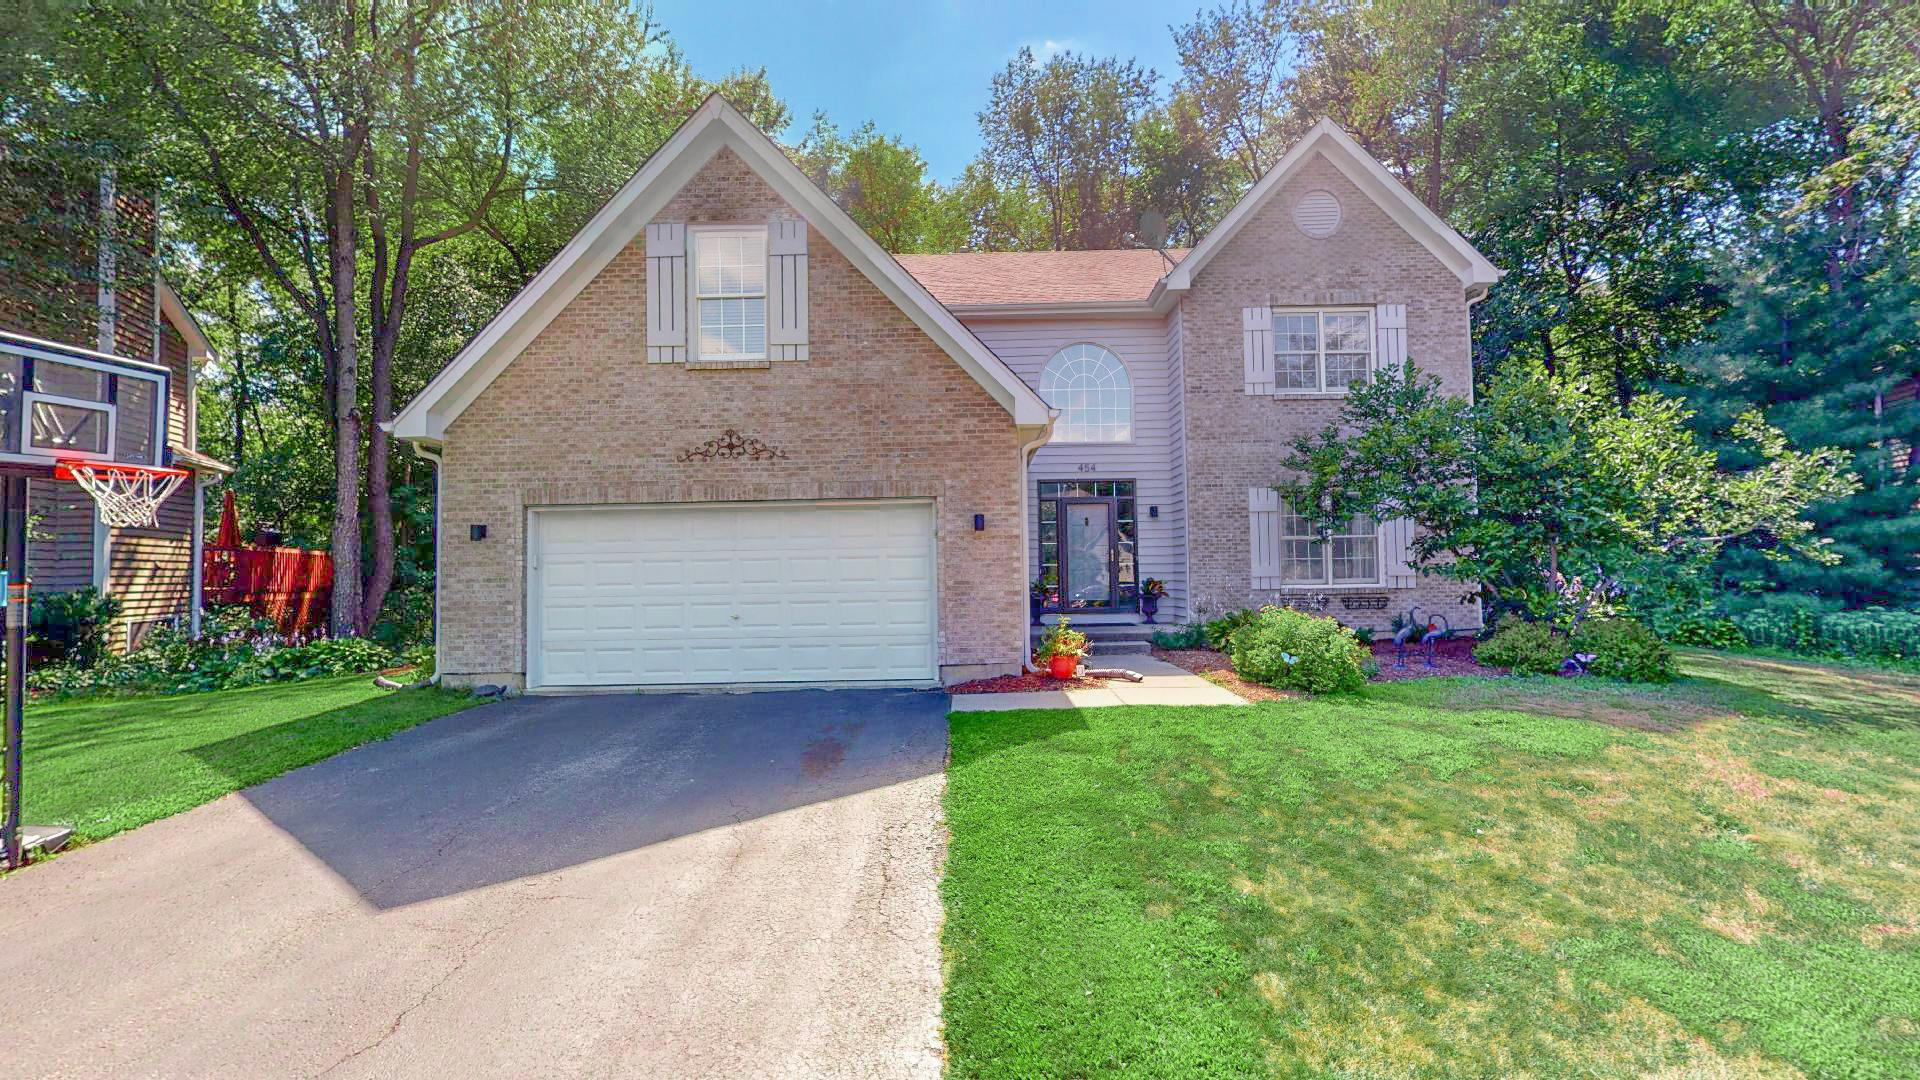 454 Kelly Lane, Crystal Lake, IL 60012 - #: 10795150